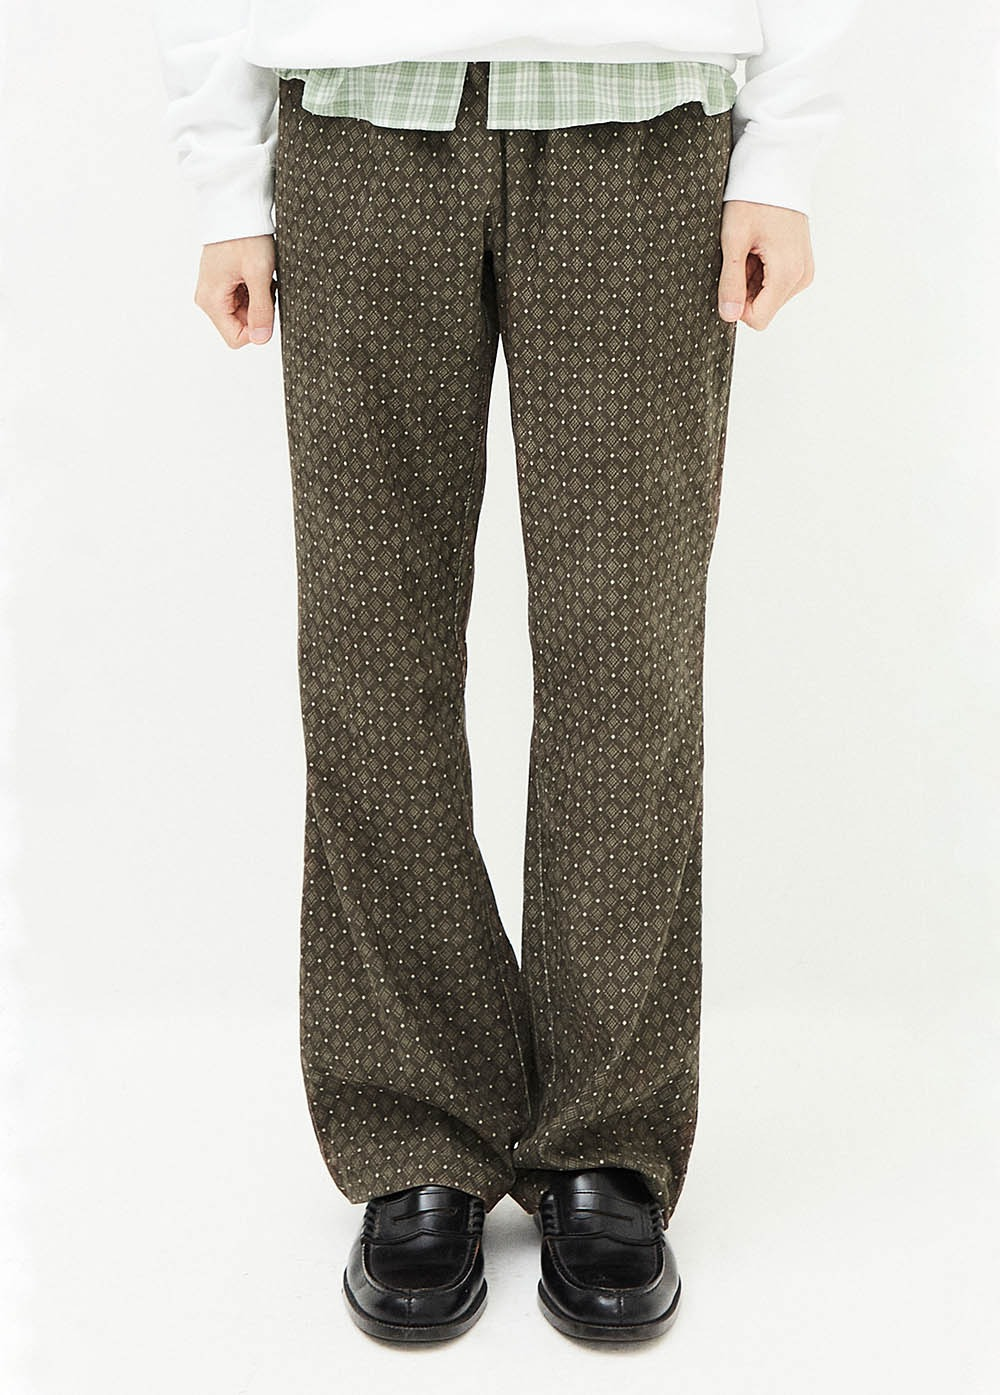 KANCO BELL PANTS brown